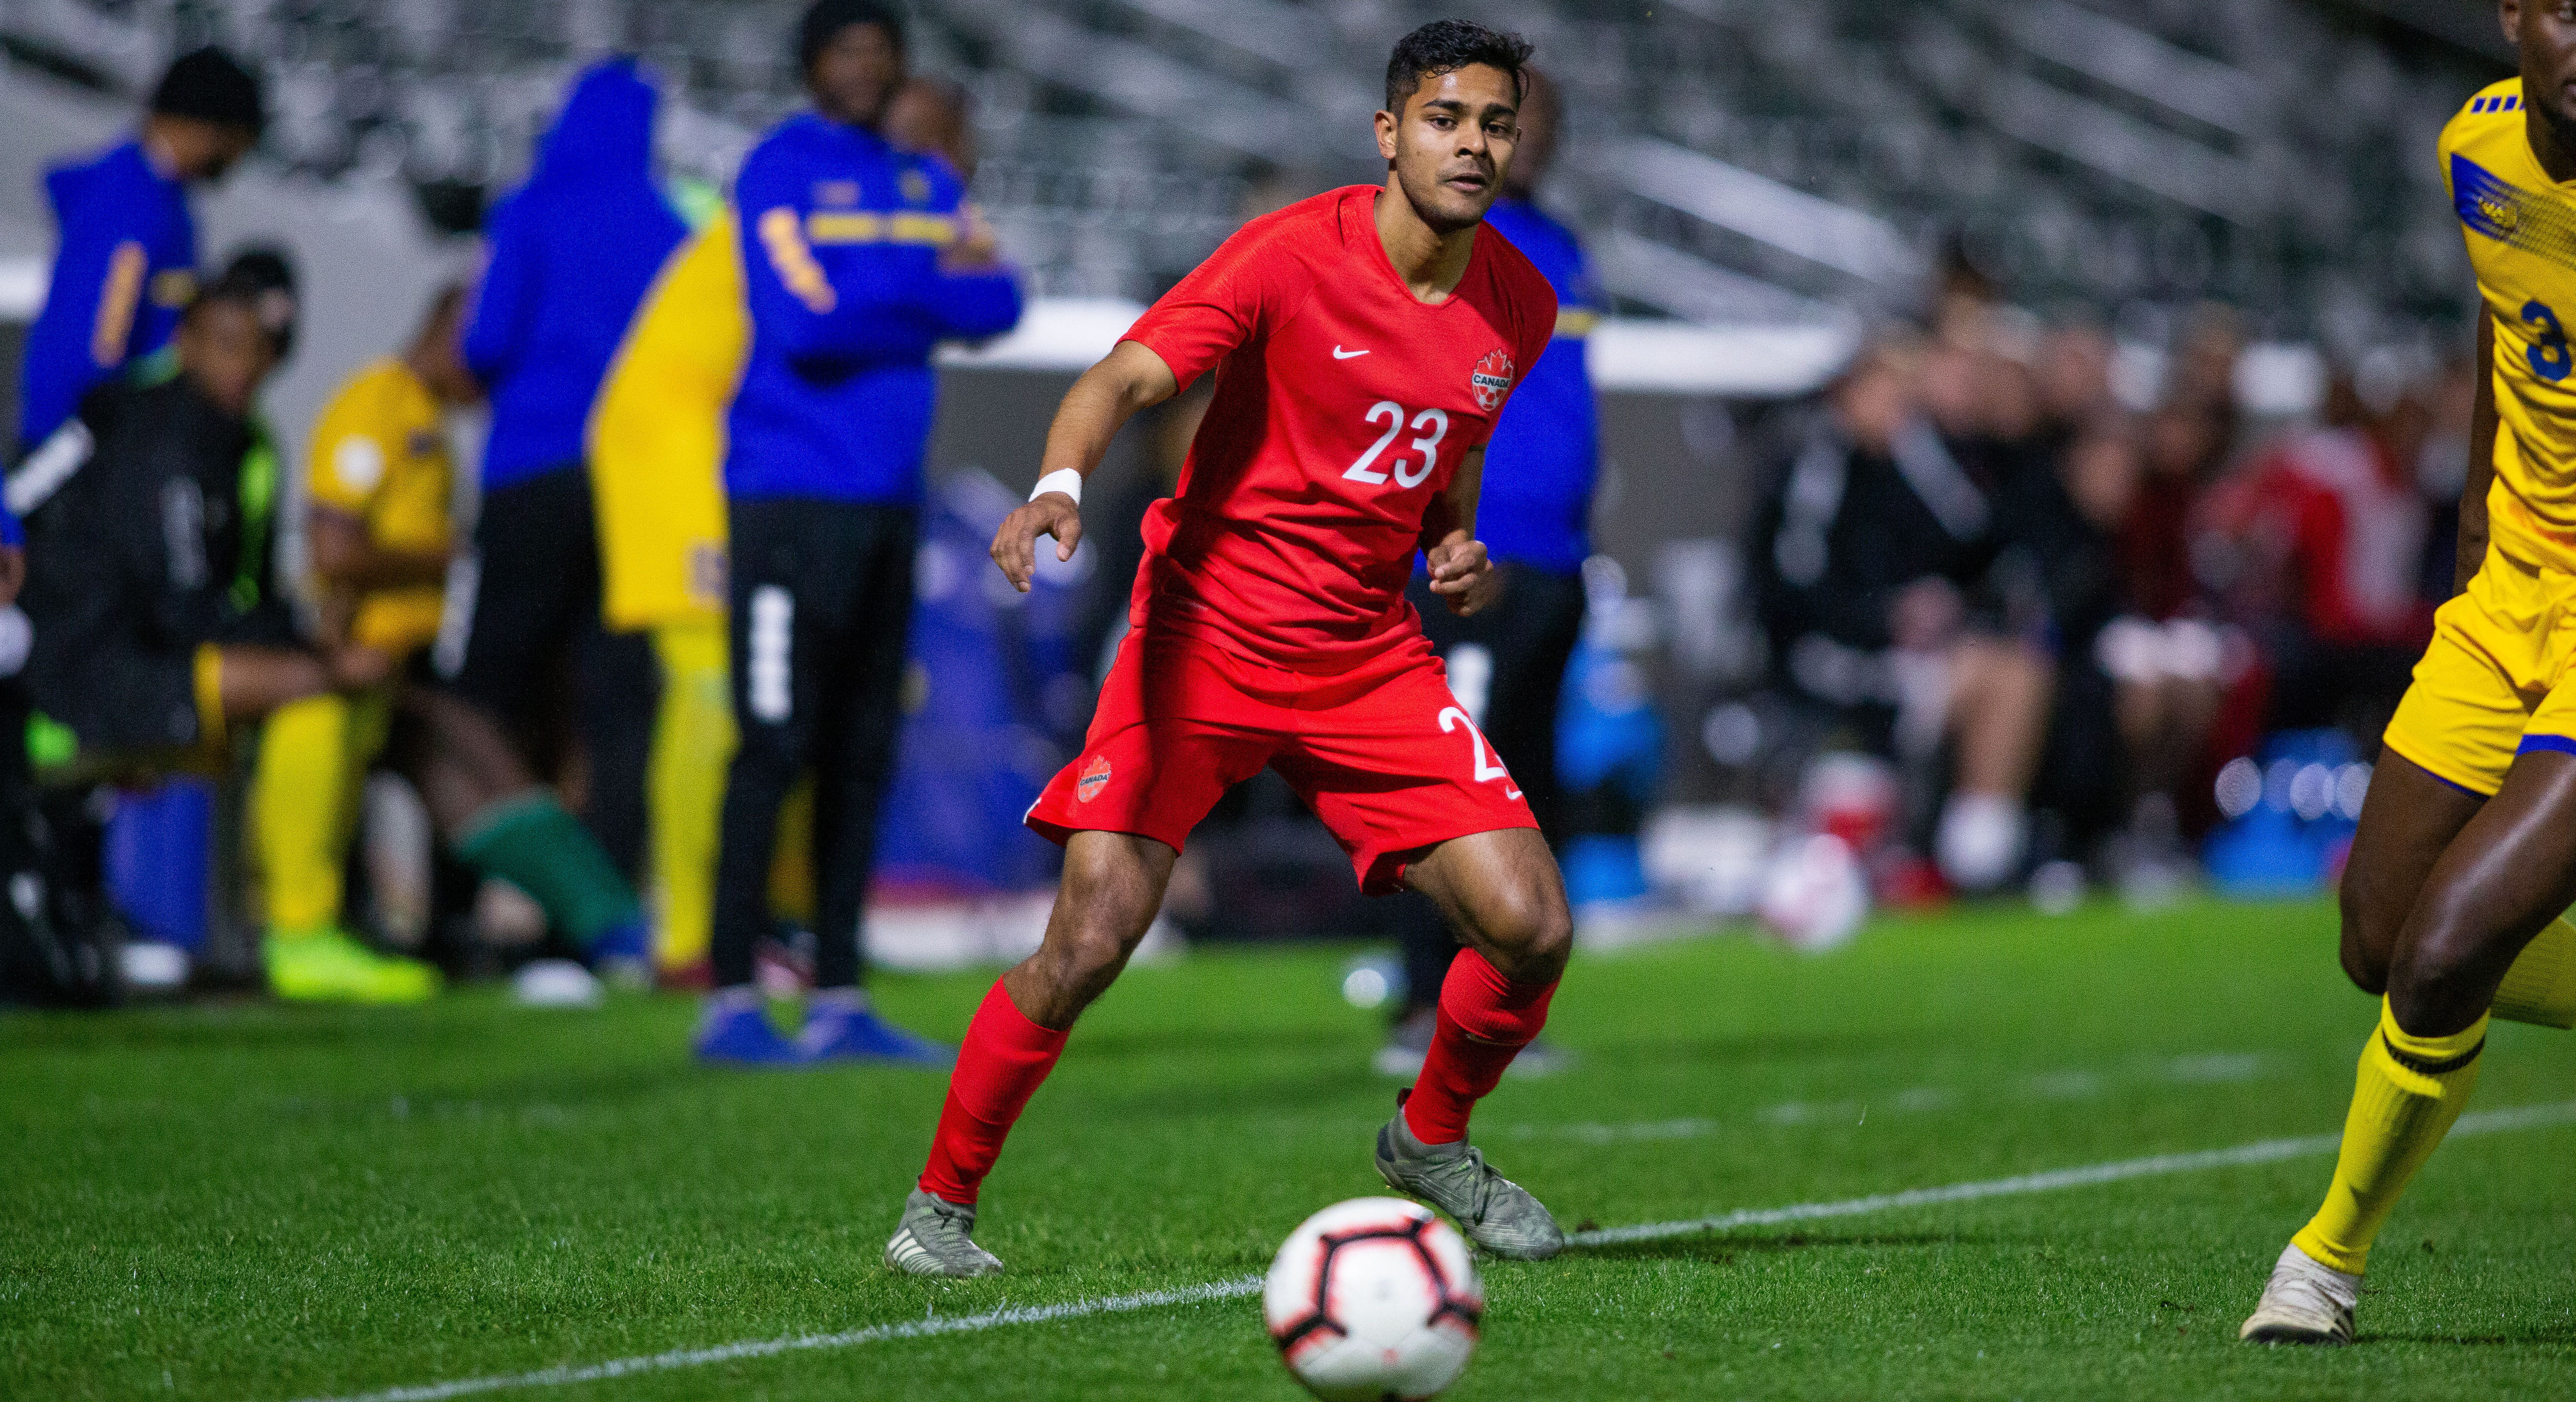 Shamit Shome in action for the Canadian mens team. (Canada Soccer photo)